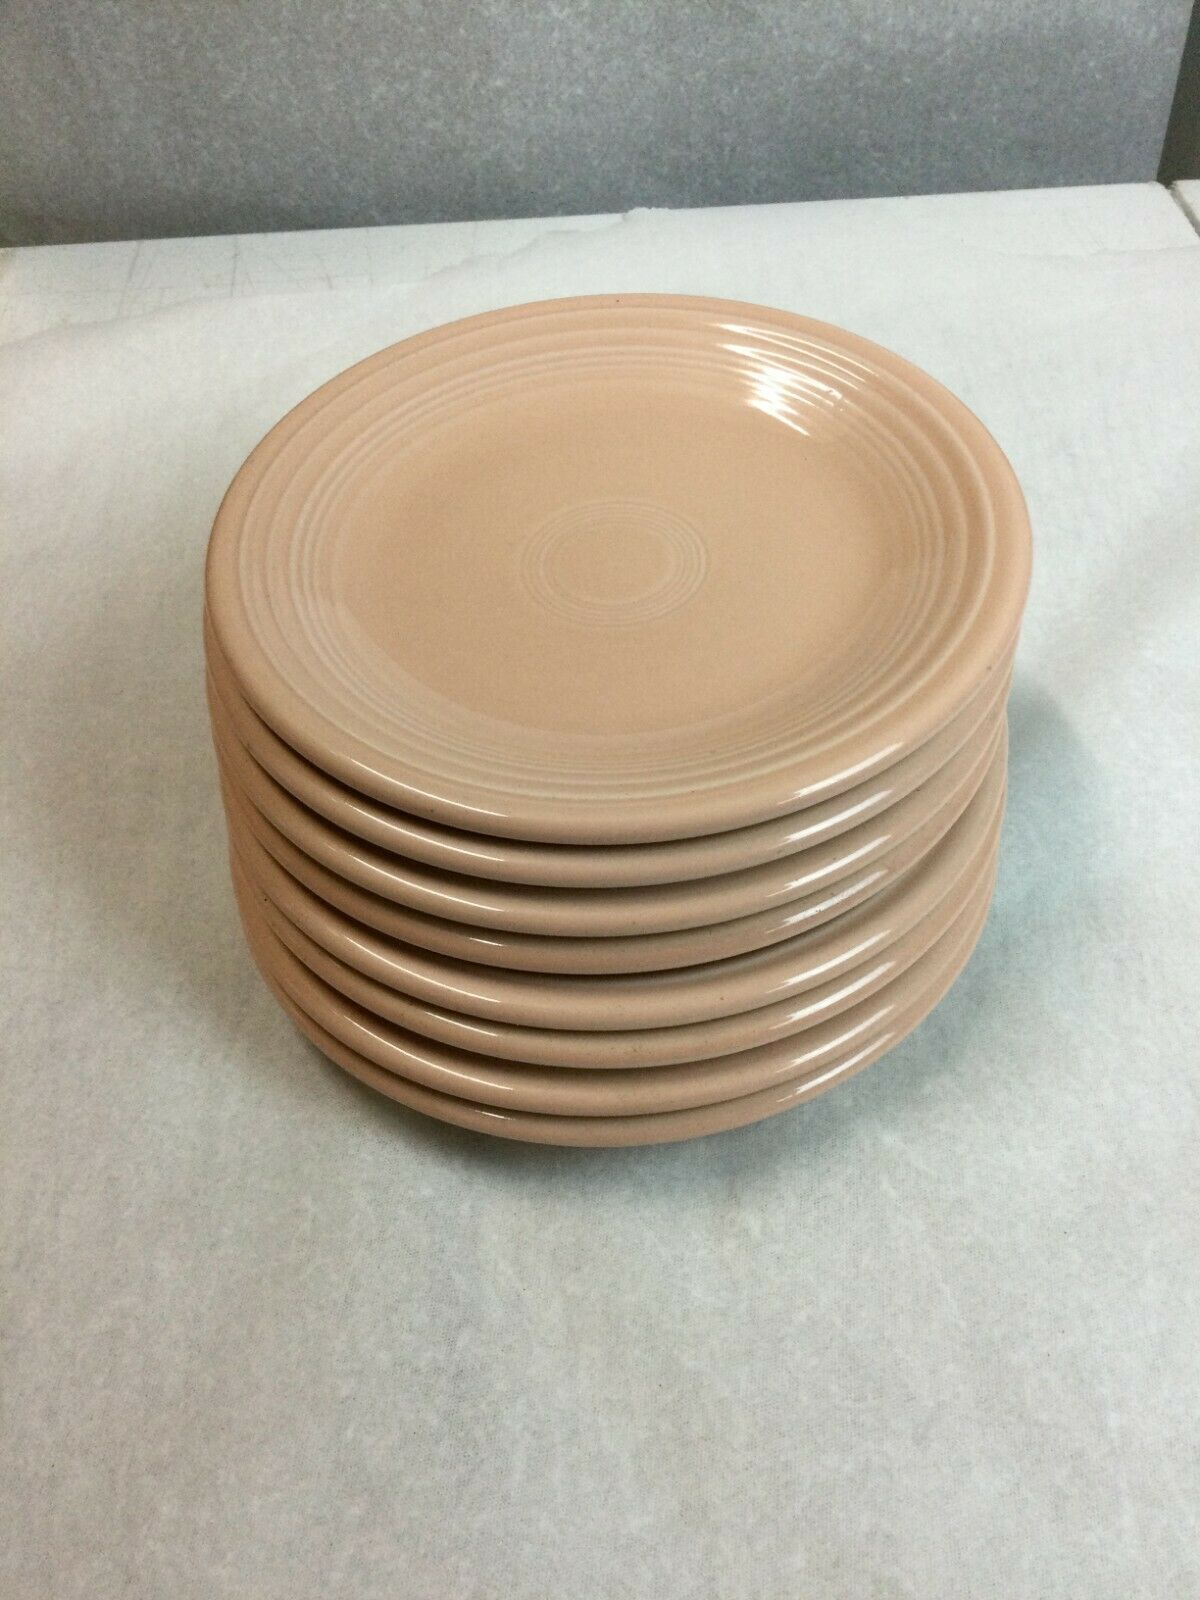 "8 Fiesta Ware Serving Plates Apricot Color - 7.25"" - $118.80"